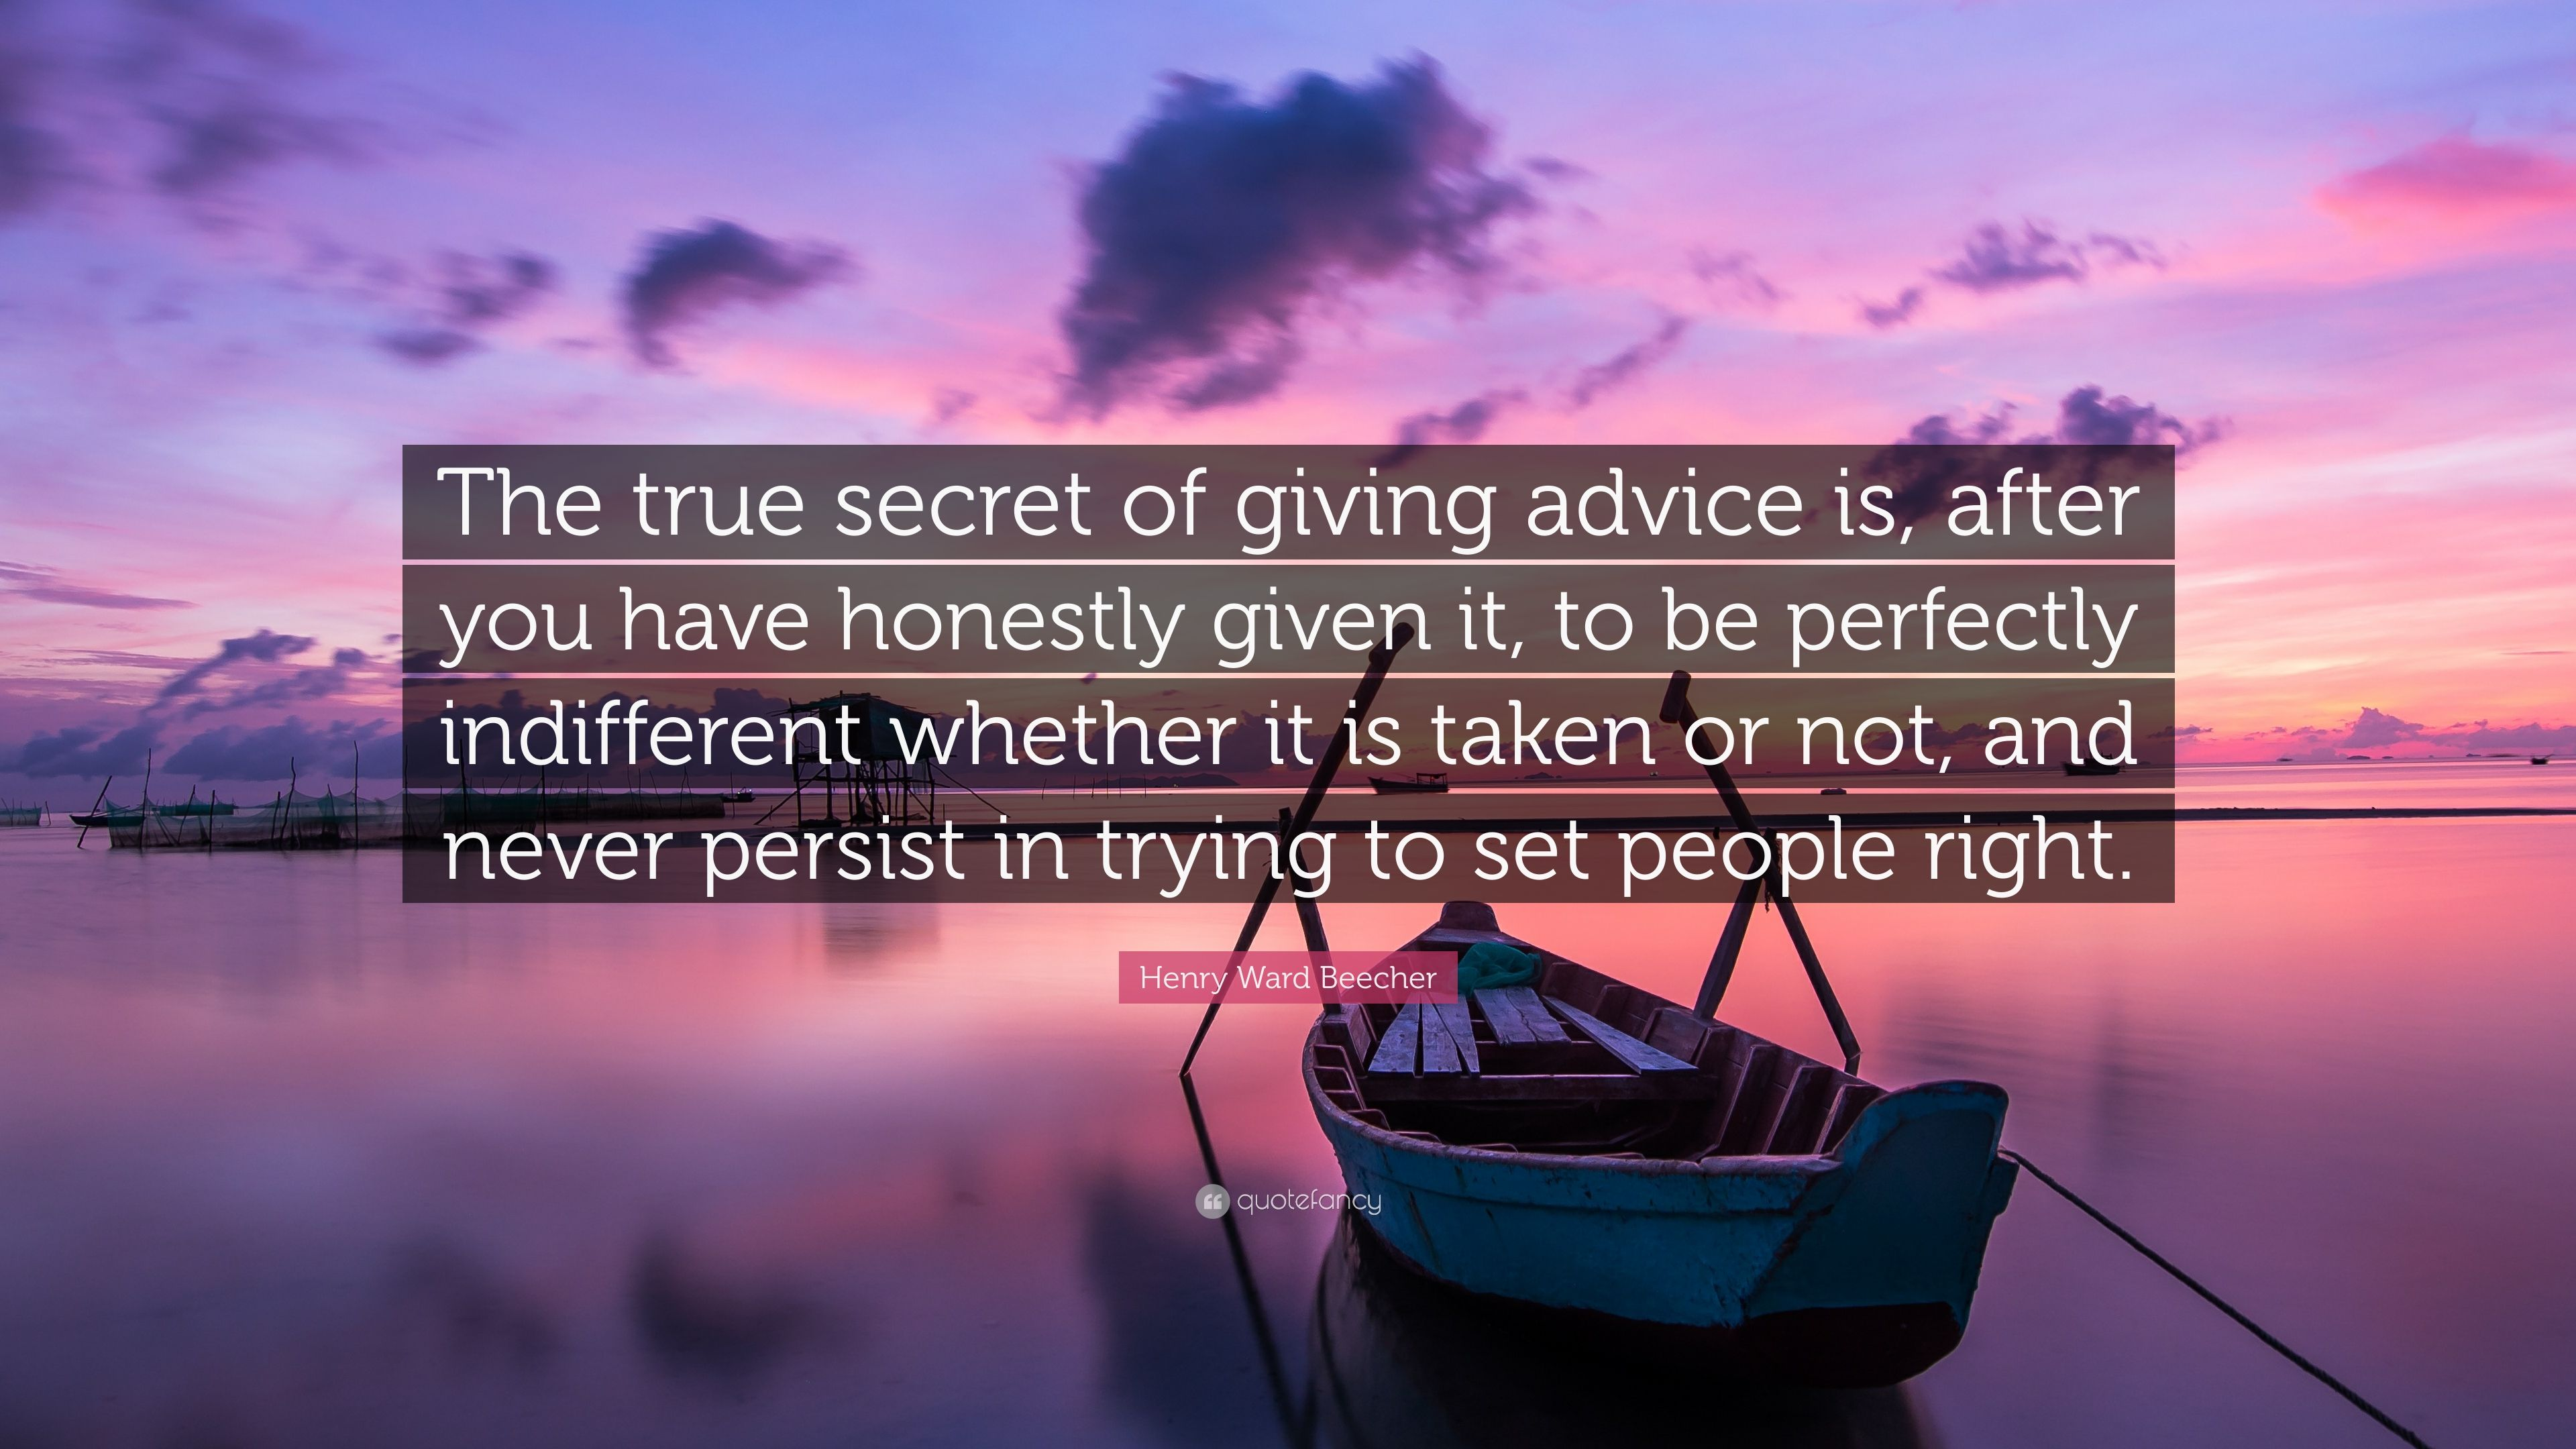 Exceptional Henry Ward Beecher Quote: U201cThe True Secret Of Giving Advice Is, After You